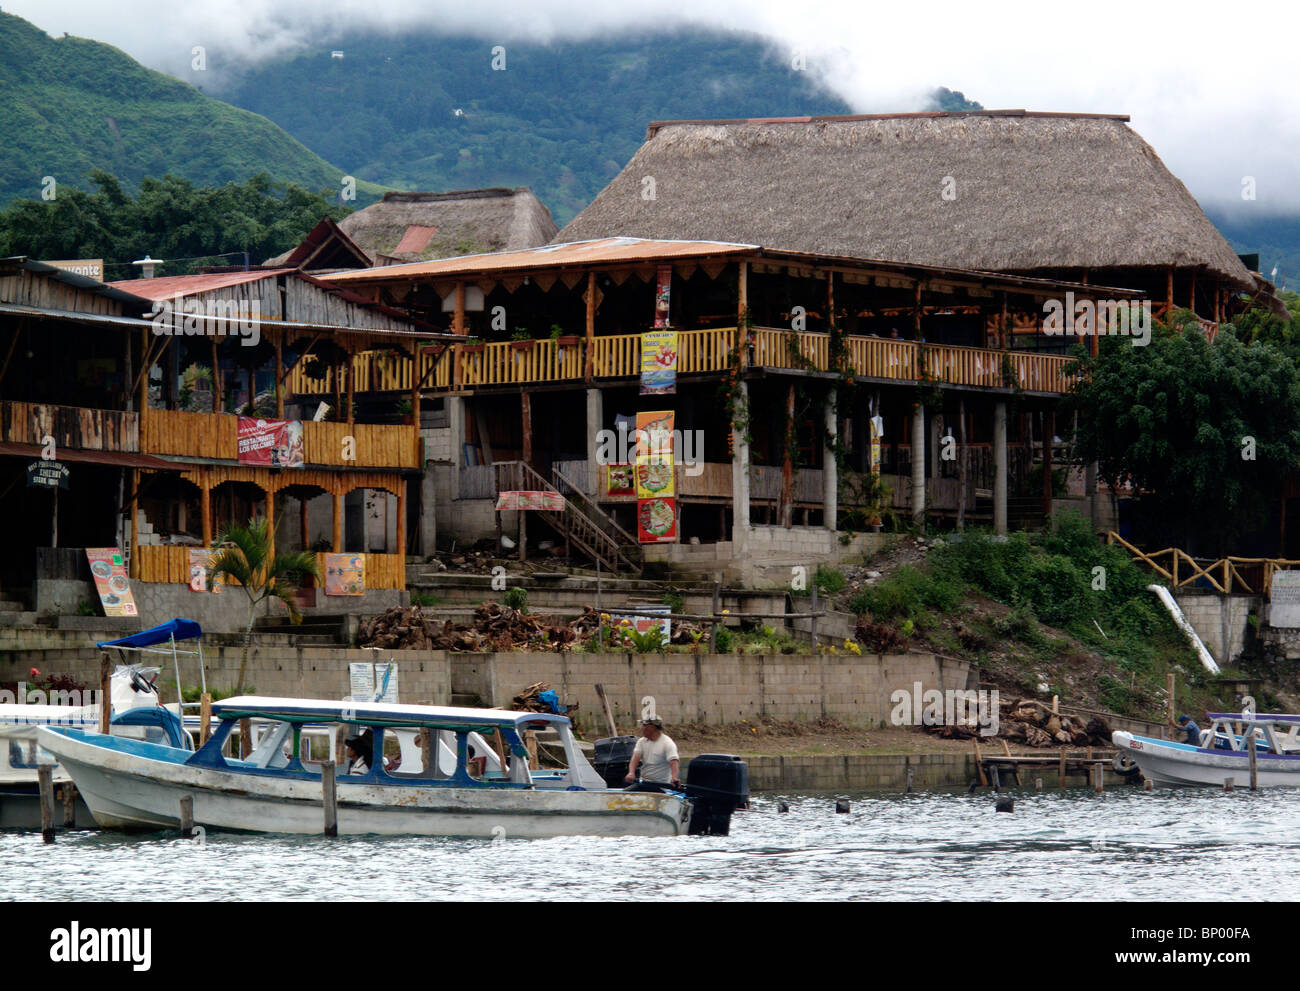 The boat dock at Panajachel on the shores of Lake Atitlan in Guatemala - Stock Image